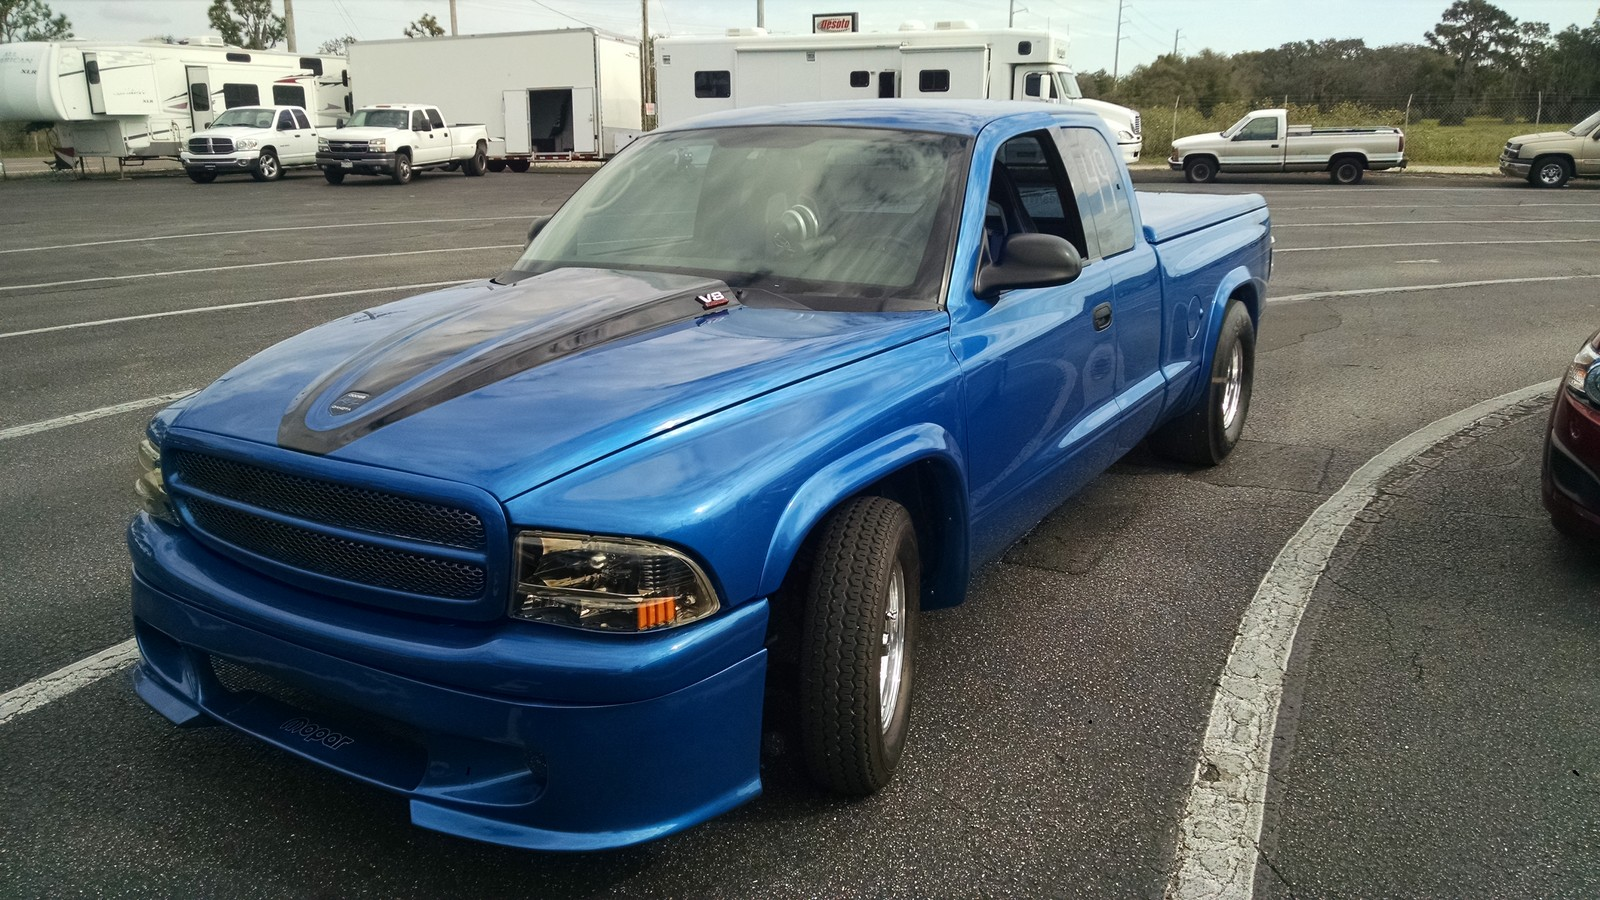 Intense Blue 2001 Dodge Dakota Sport 4.7L